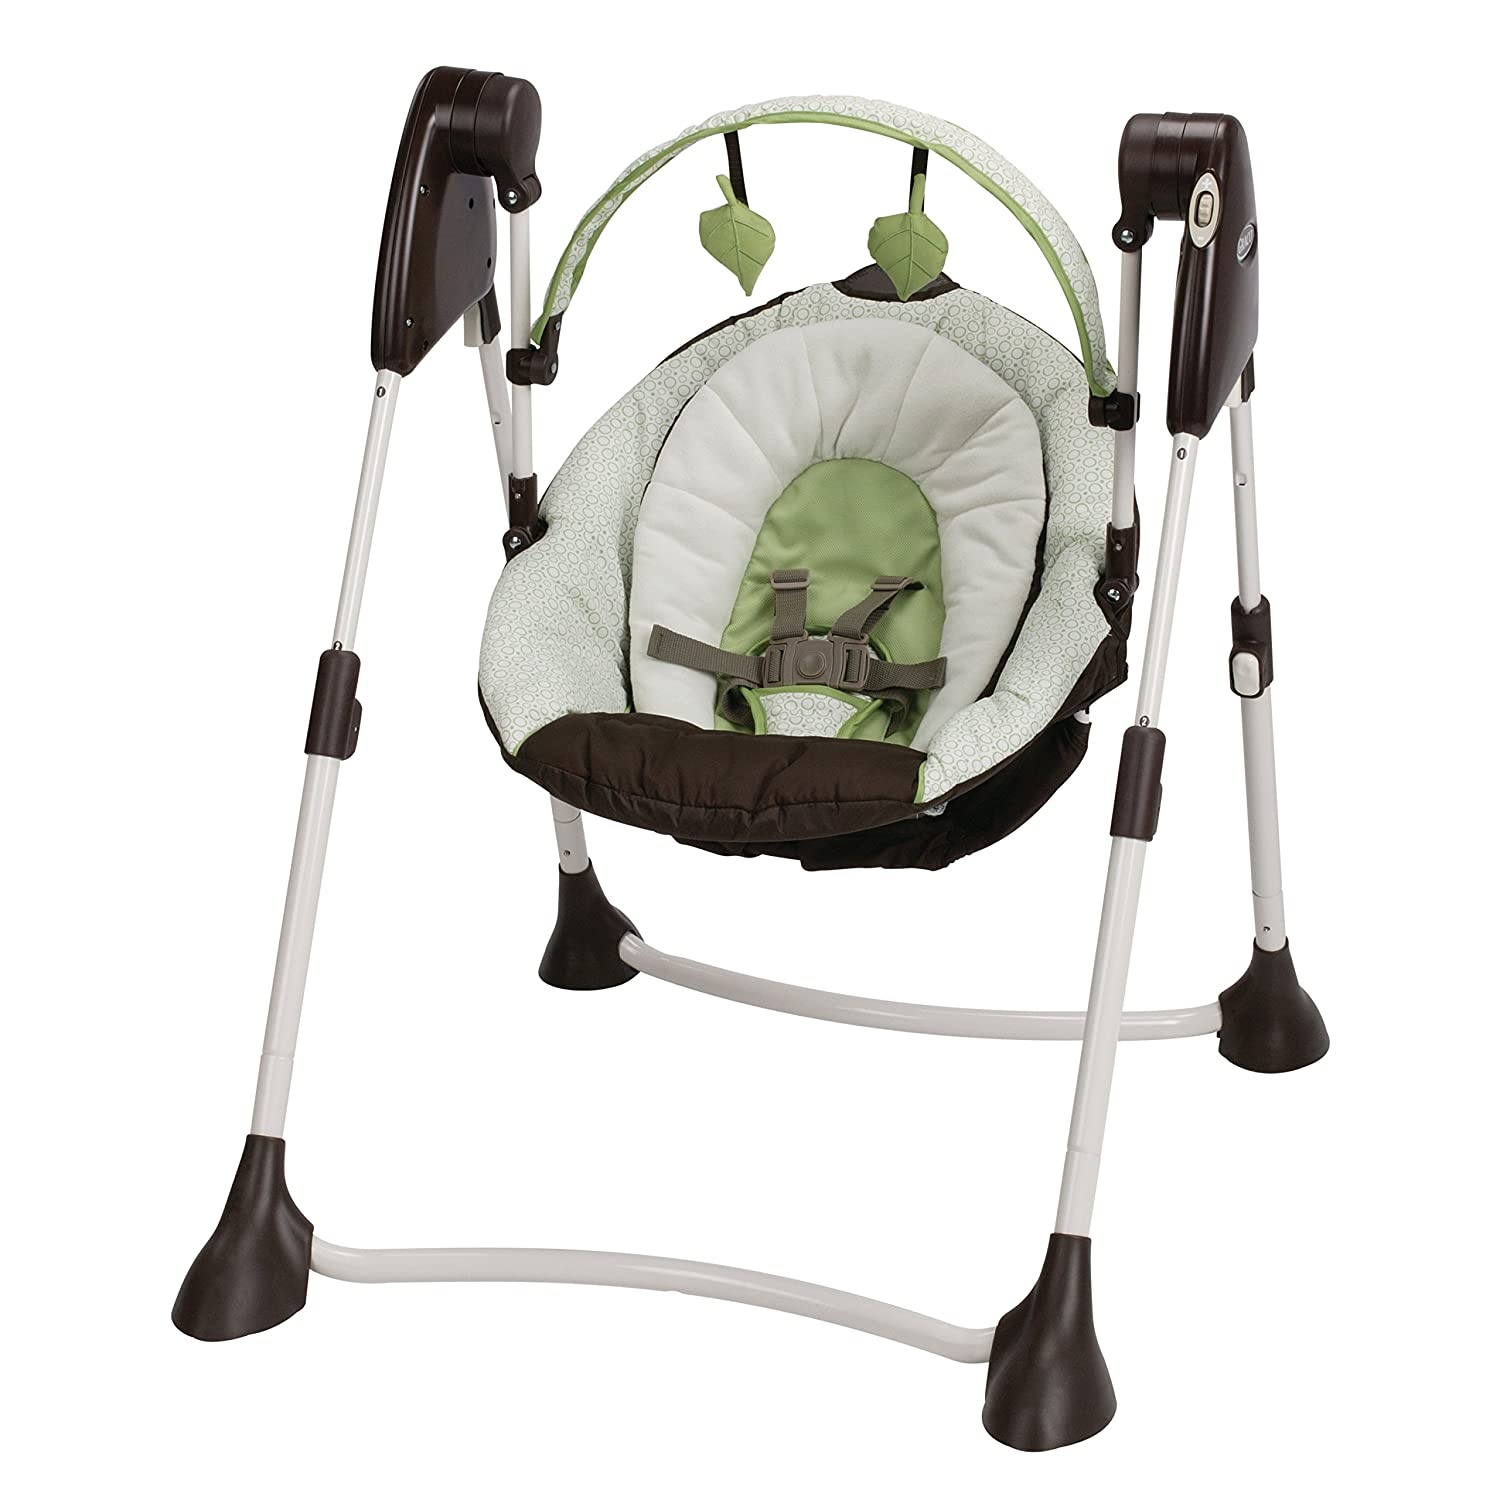 Amazon.com : Graco Swing By Me 2-in-1 Portable Swing, Go Green : Baby